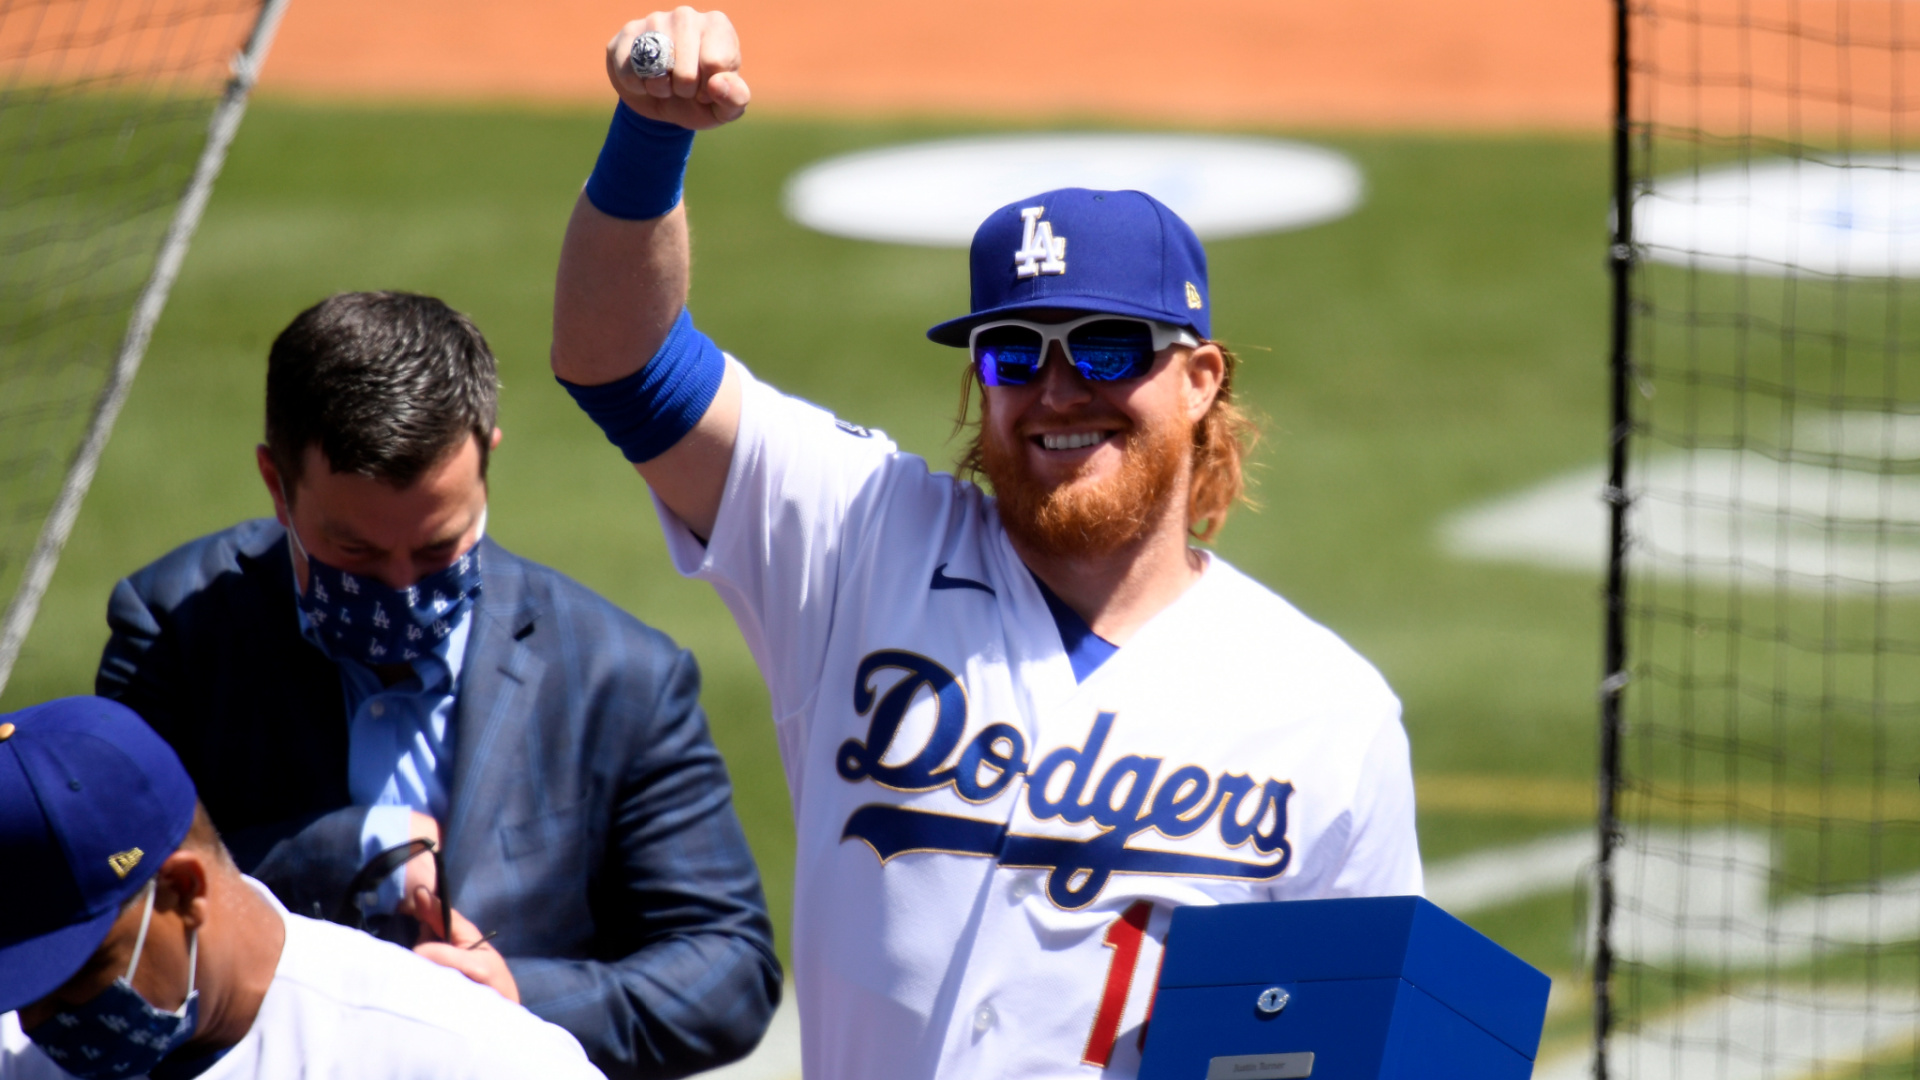 Justin Turner #2 of the Los Angeles Dodgers acknowledges the crowd after receiving his World Series ring prior to the game against the Washington Nationals at Dodger Stadium on April 9, 2021 in Los Angeles. (Harry How/Getty Images)